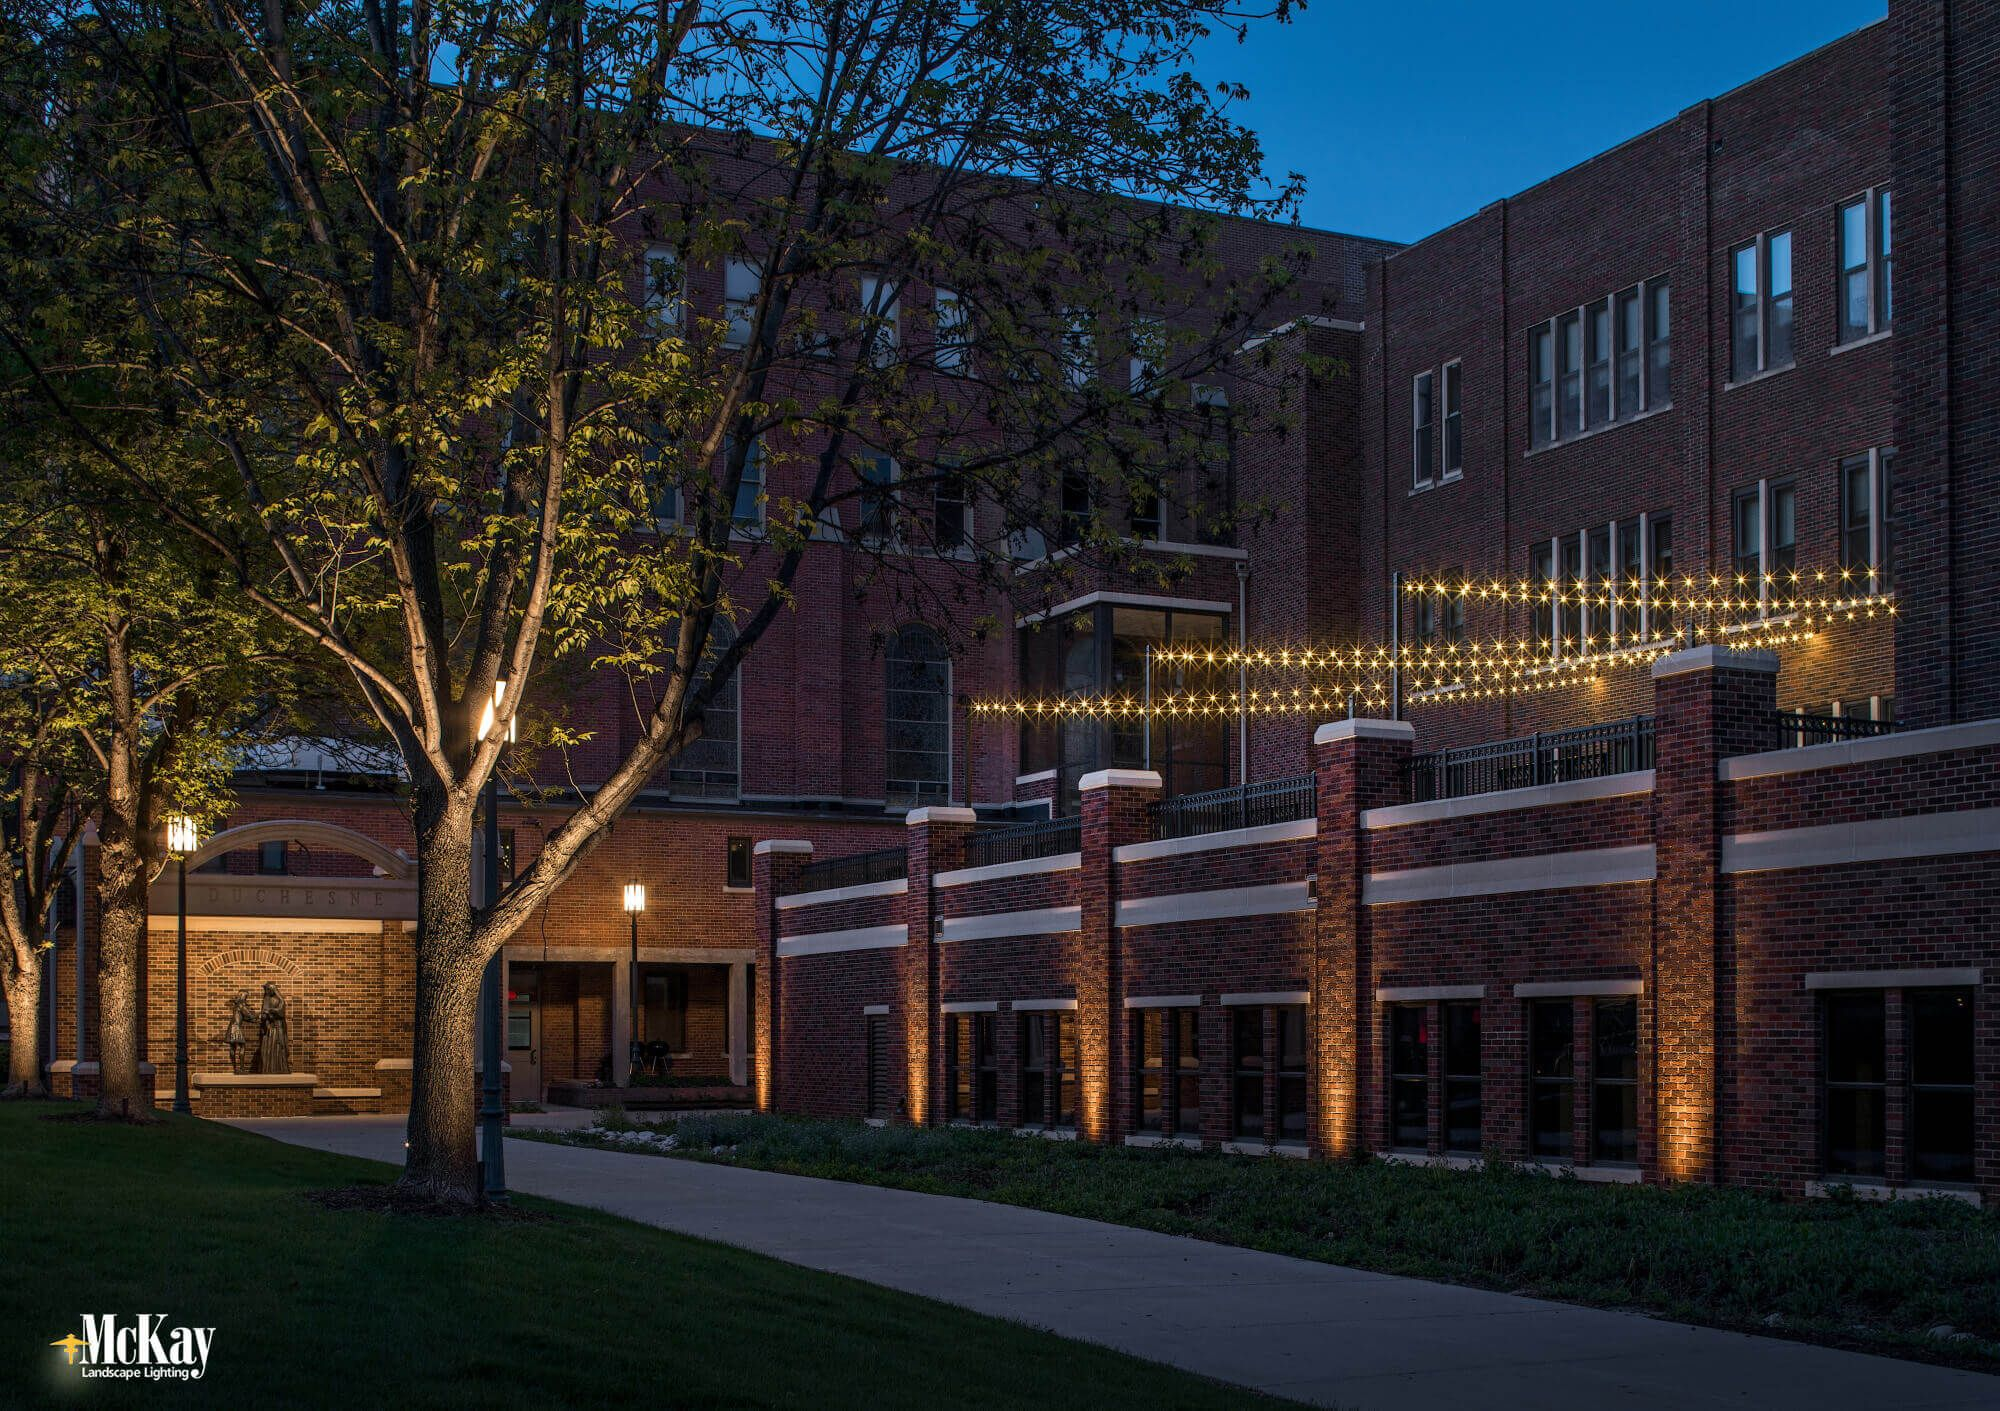 School campus courtyard lighting click to see more of the